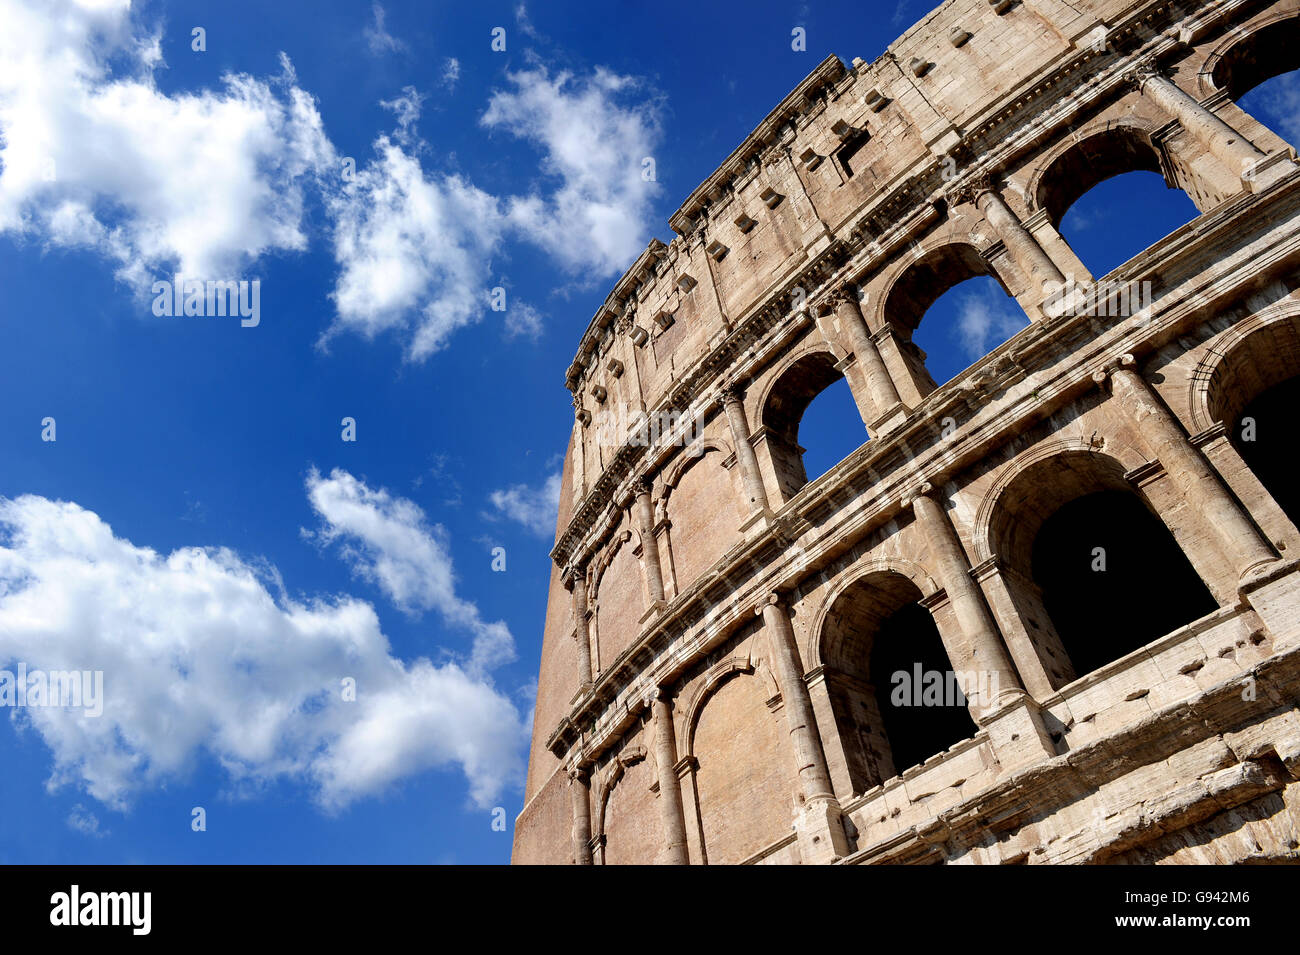 Rome, Italy. The Imperial Fora. Colosseum. Picture by Paul Heyes, Wednesday June 01, 2016.  Rome, Italy. Picture - Stock Image